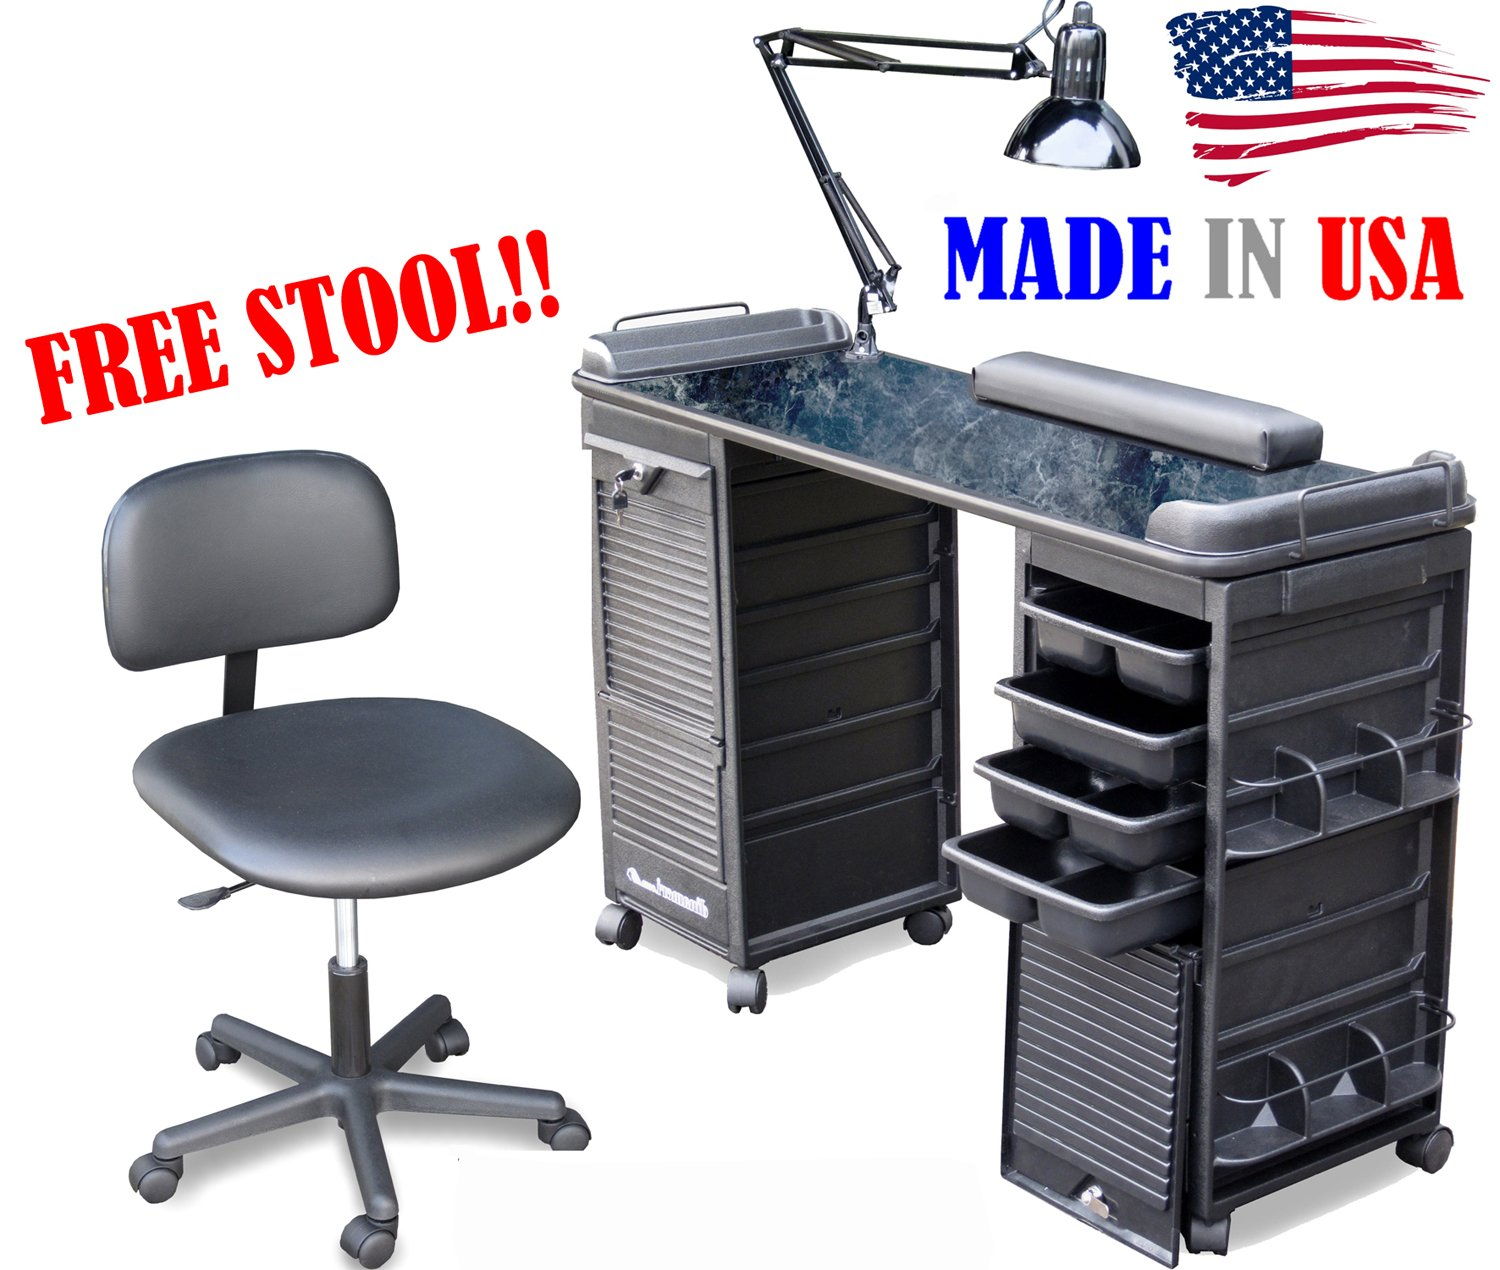 MANICURE TABLE SET WITH FREE STOOL B606-920 BM made in USA by Dina Meri